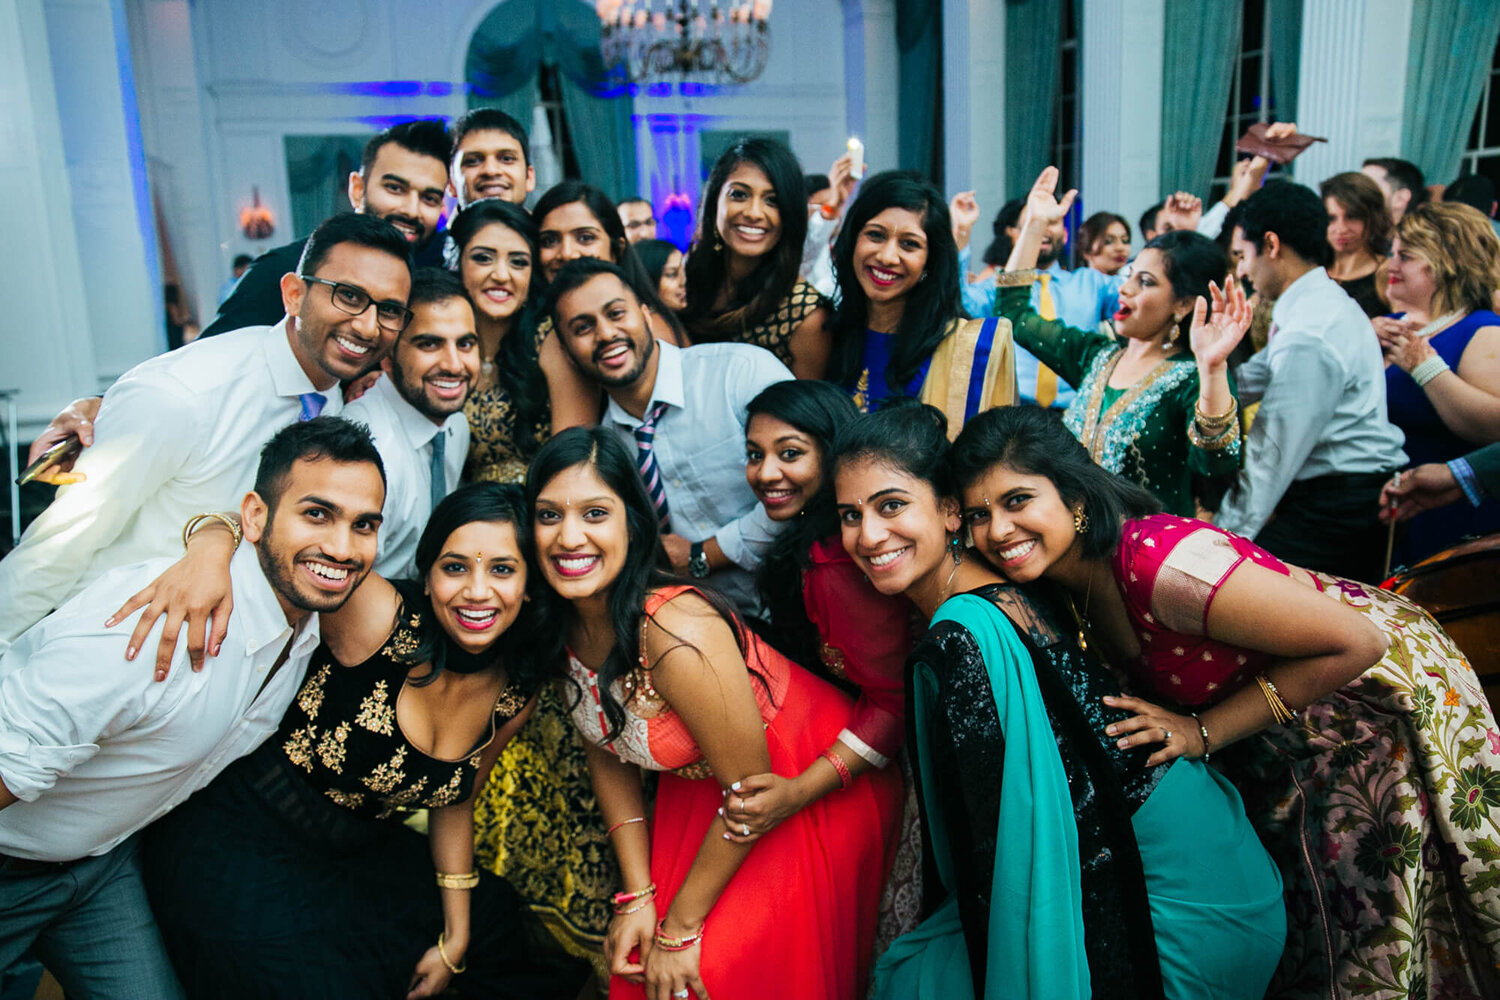 27-indian-wedding-marriot-grand-st-louis-mo-friends-group-photo.jpg